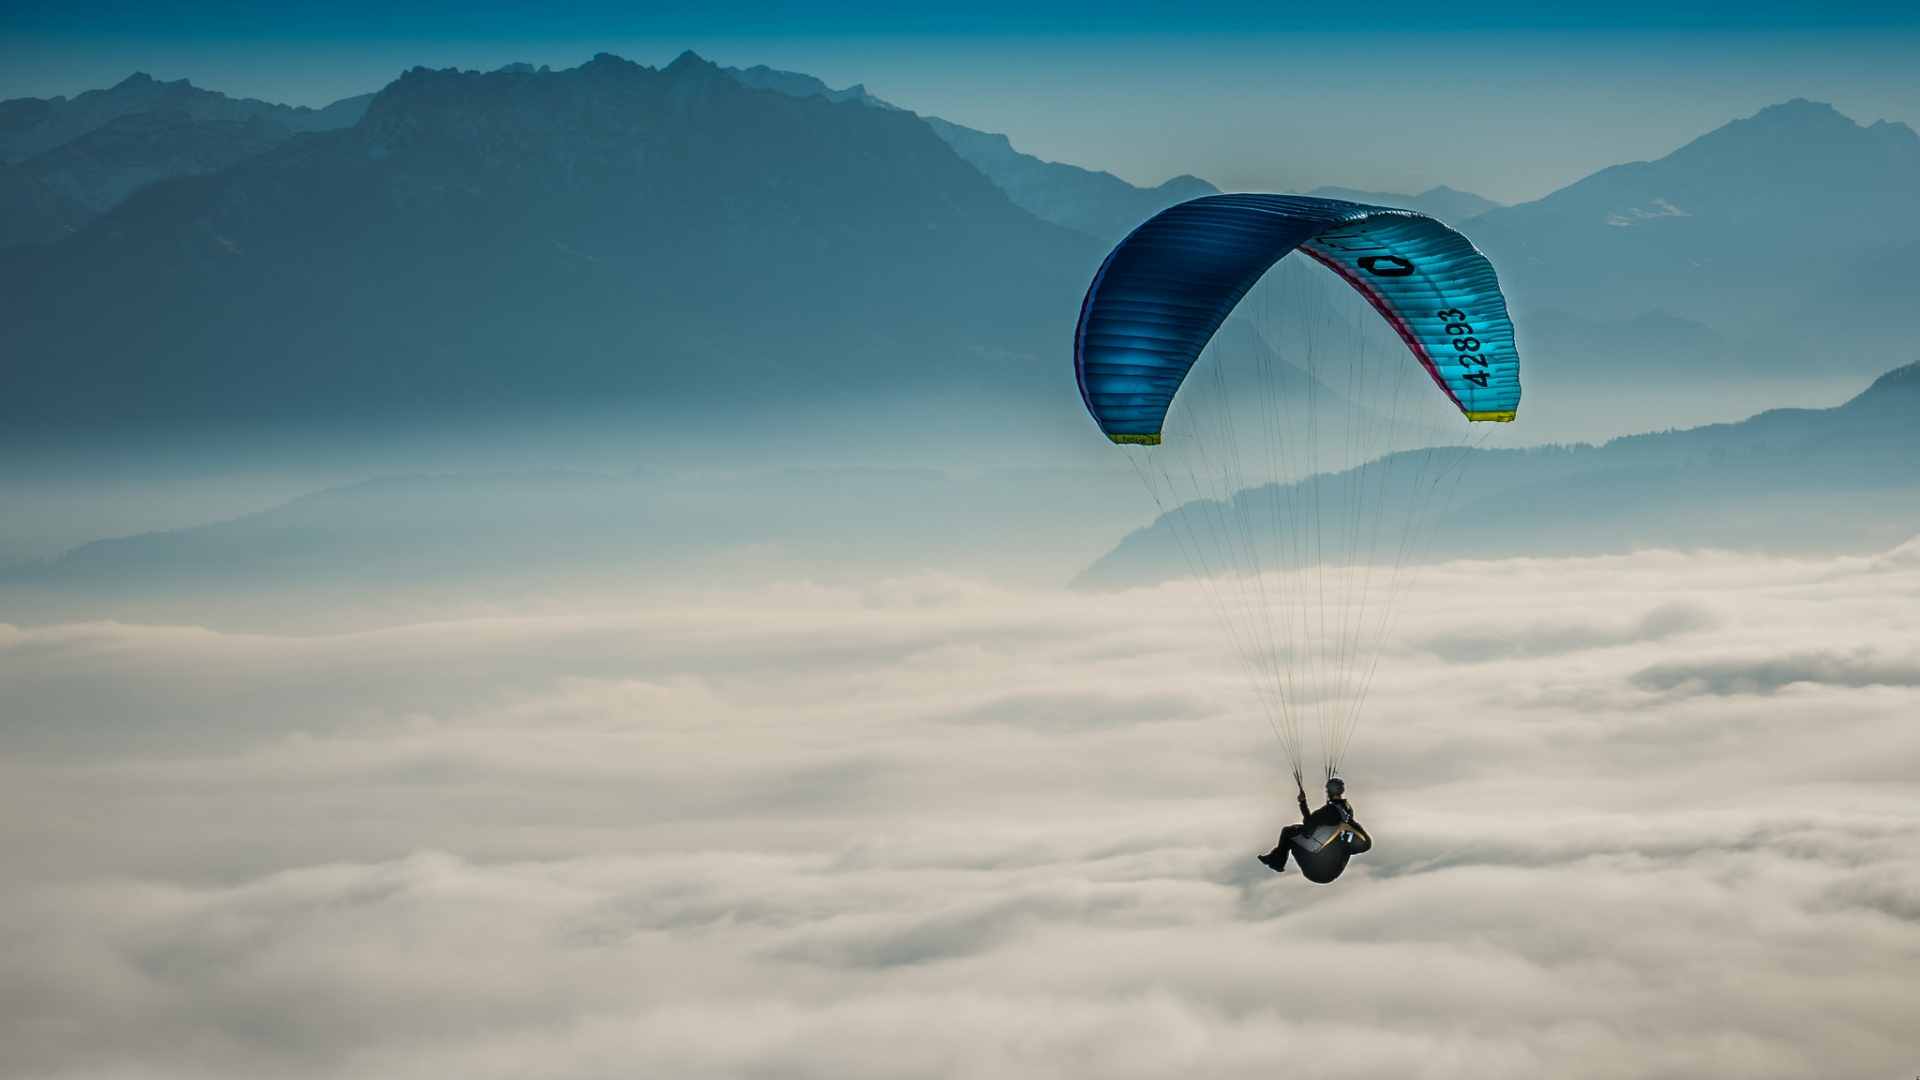 Hang Gliding Above The Clouds HD Wallpaper